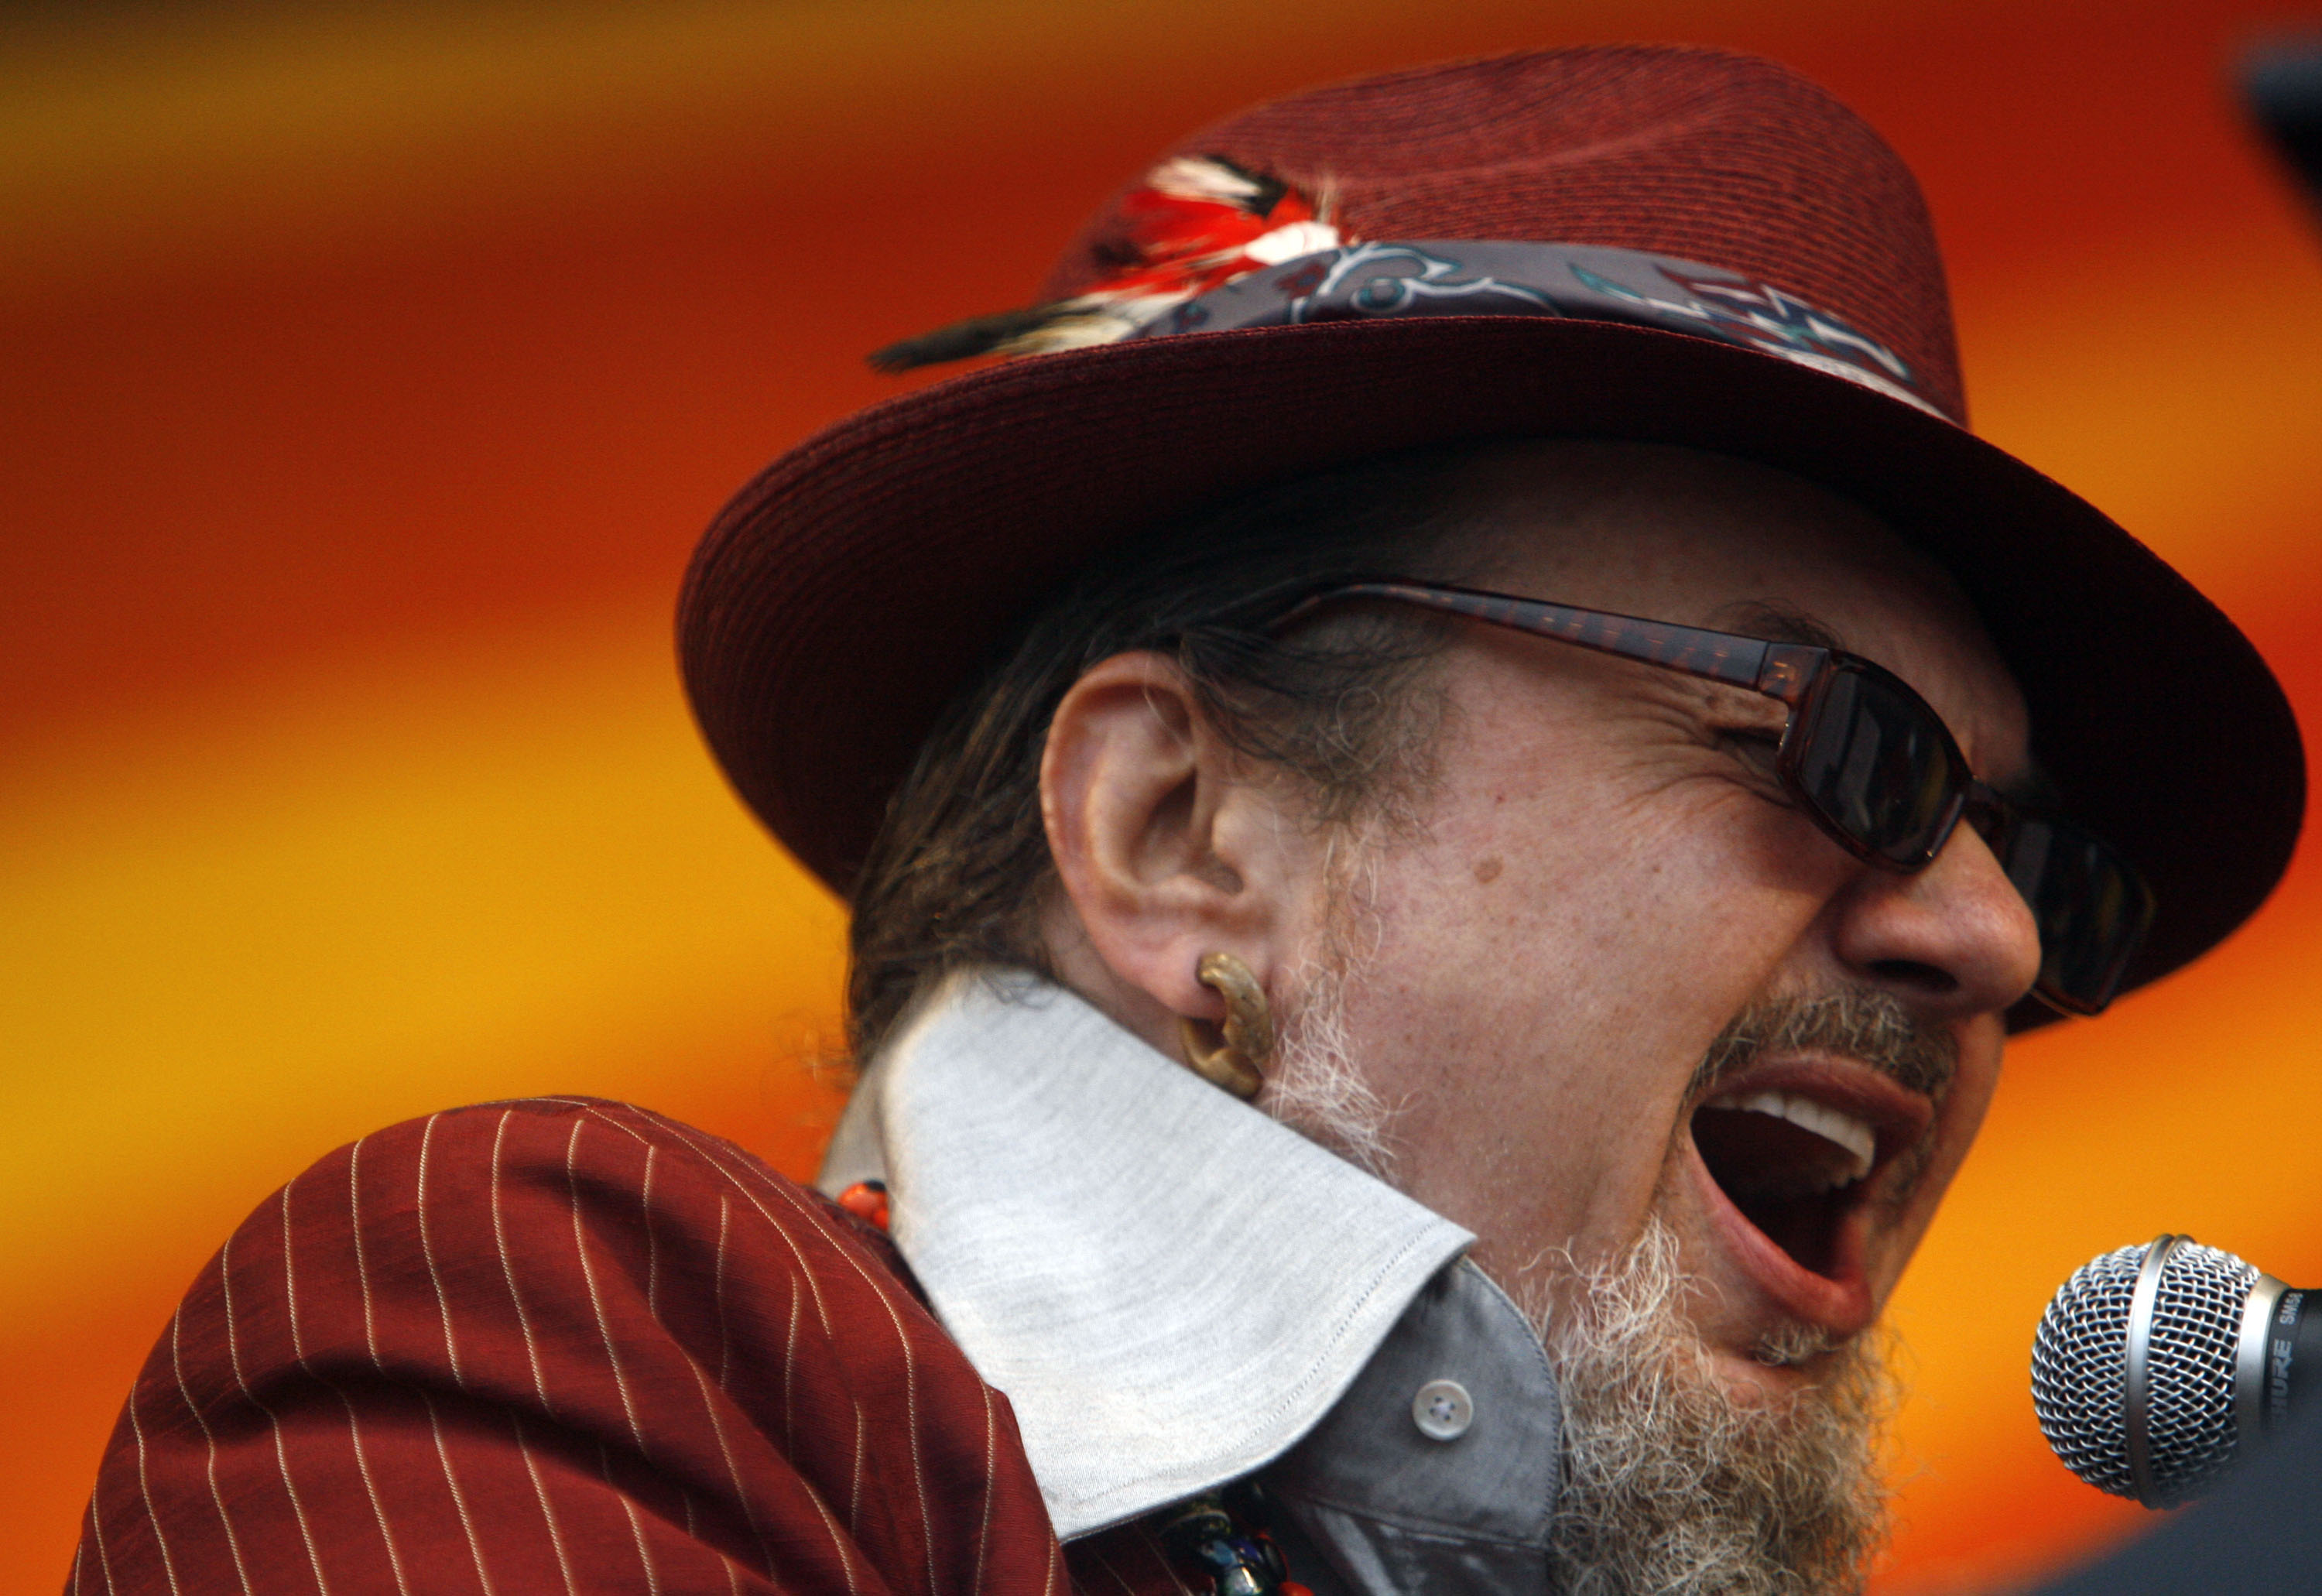 NEW ORLEANS - APRIL 26:  Singer-songwriter Dr. John performs during day two of the New Orleans Jazz & Heritage Festival at the Fair Grounds Race Course April 26, 2008 in New Orleans, Louisiana.  (Photo by Sean Gardner/Getty Images)